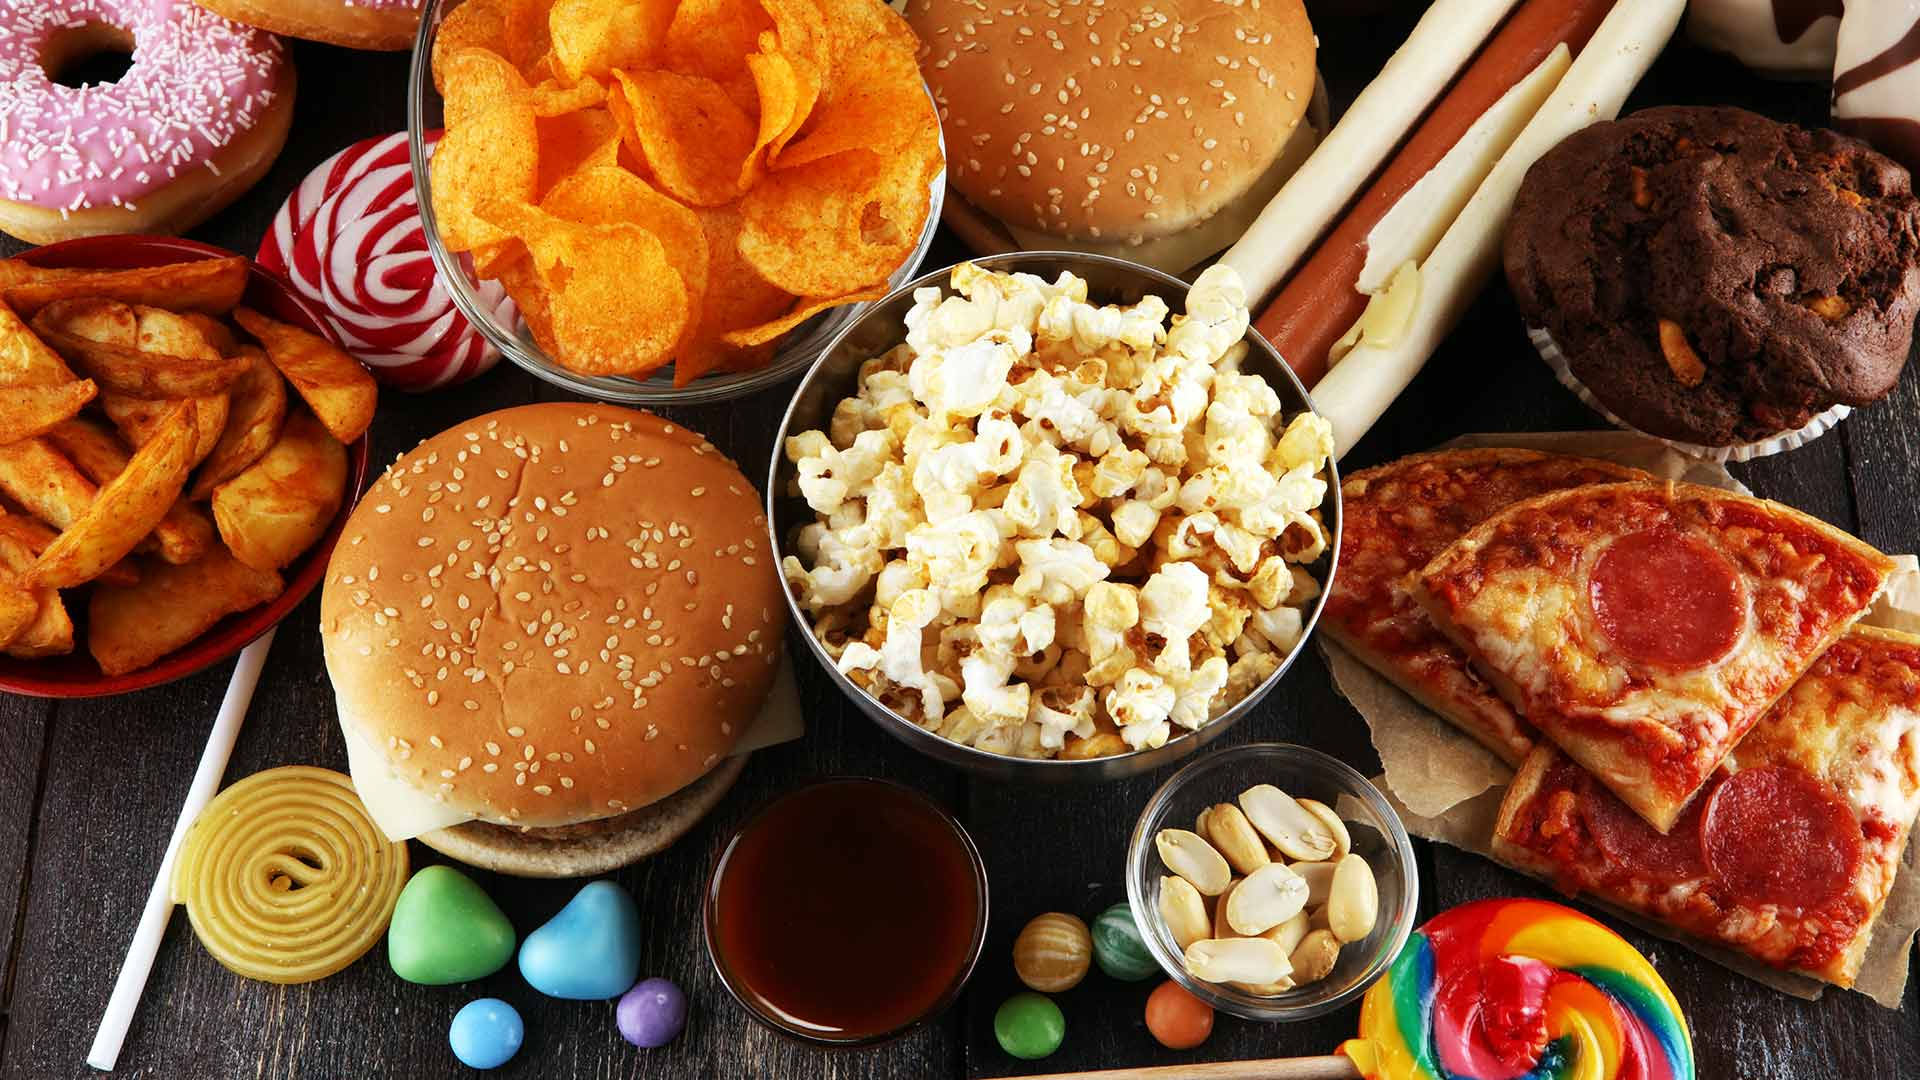 Maintain a Healthy Diet By Avoiding These Common Unhealthy Foods